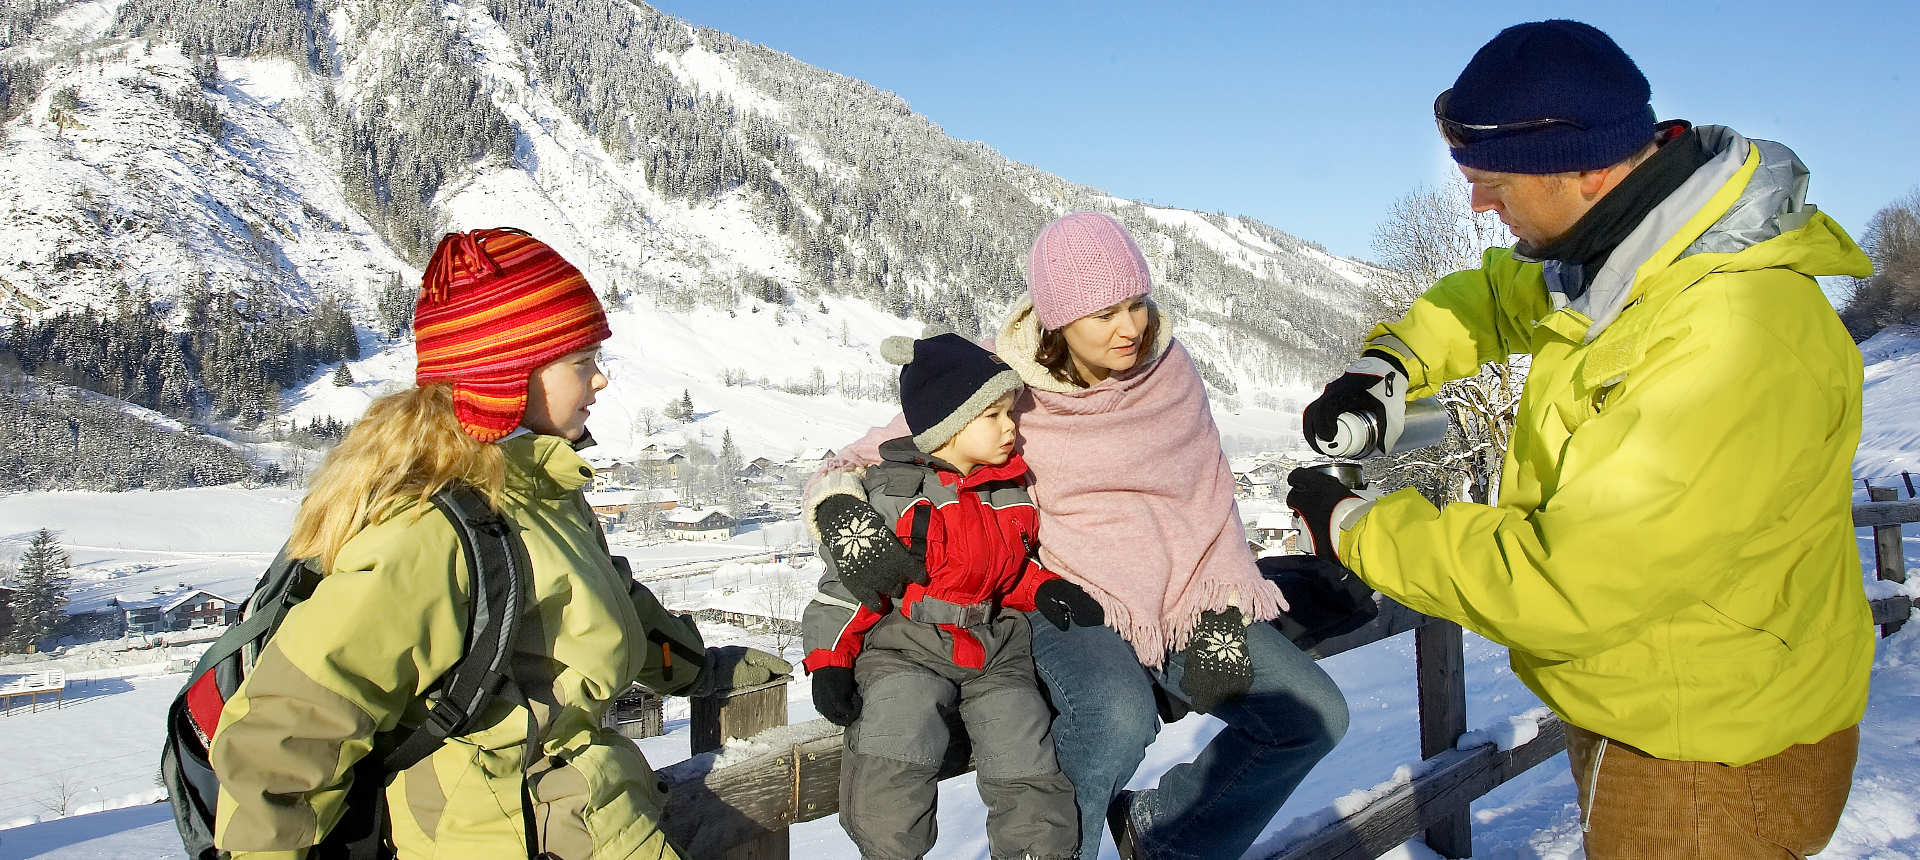 Family skiing in the Europa Sport Region Zell am See - Kaprun